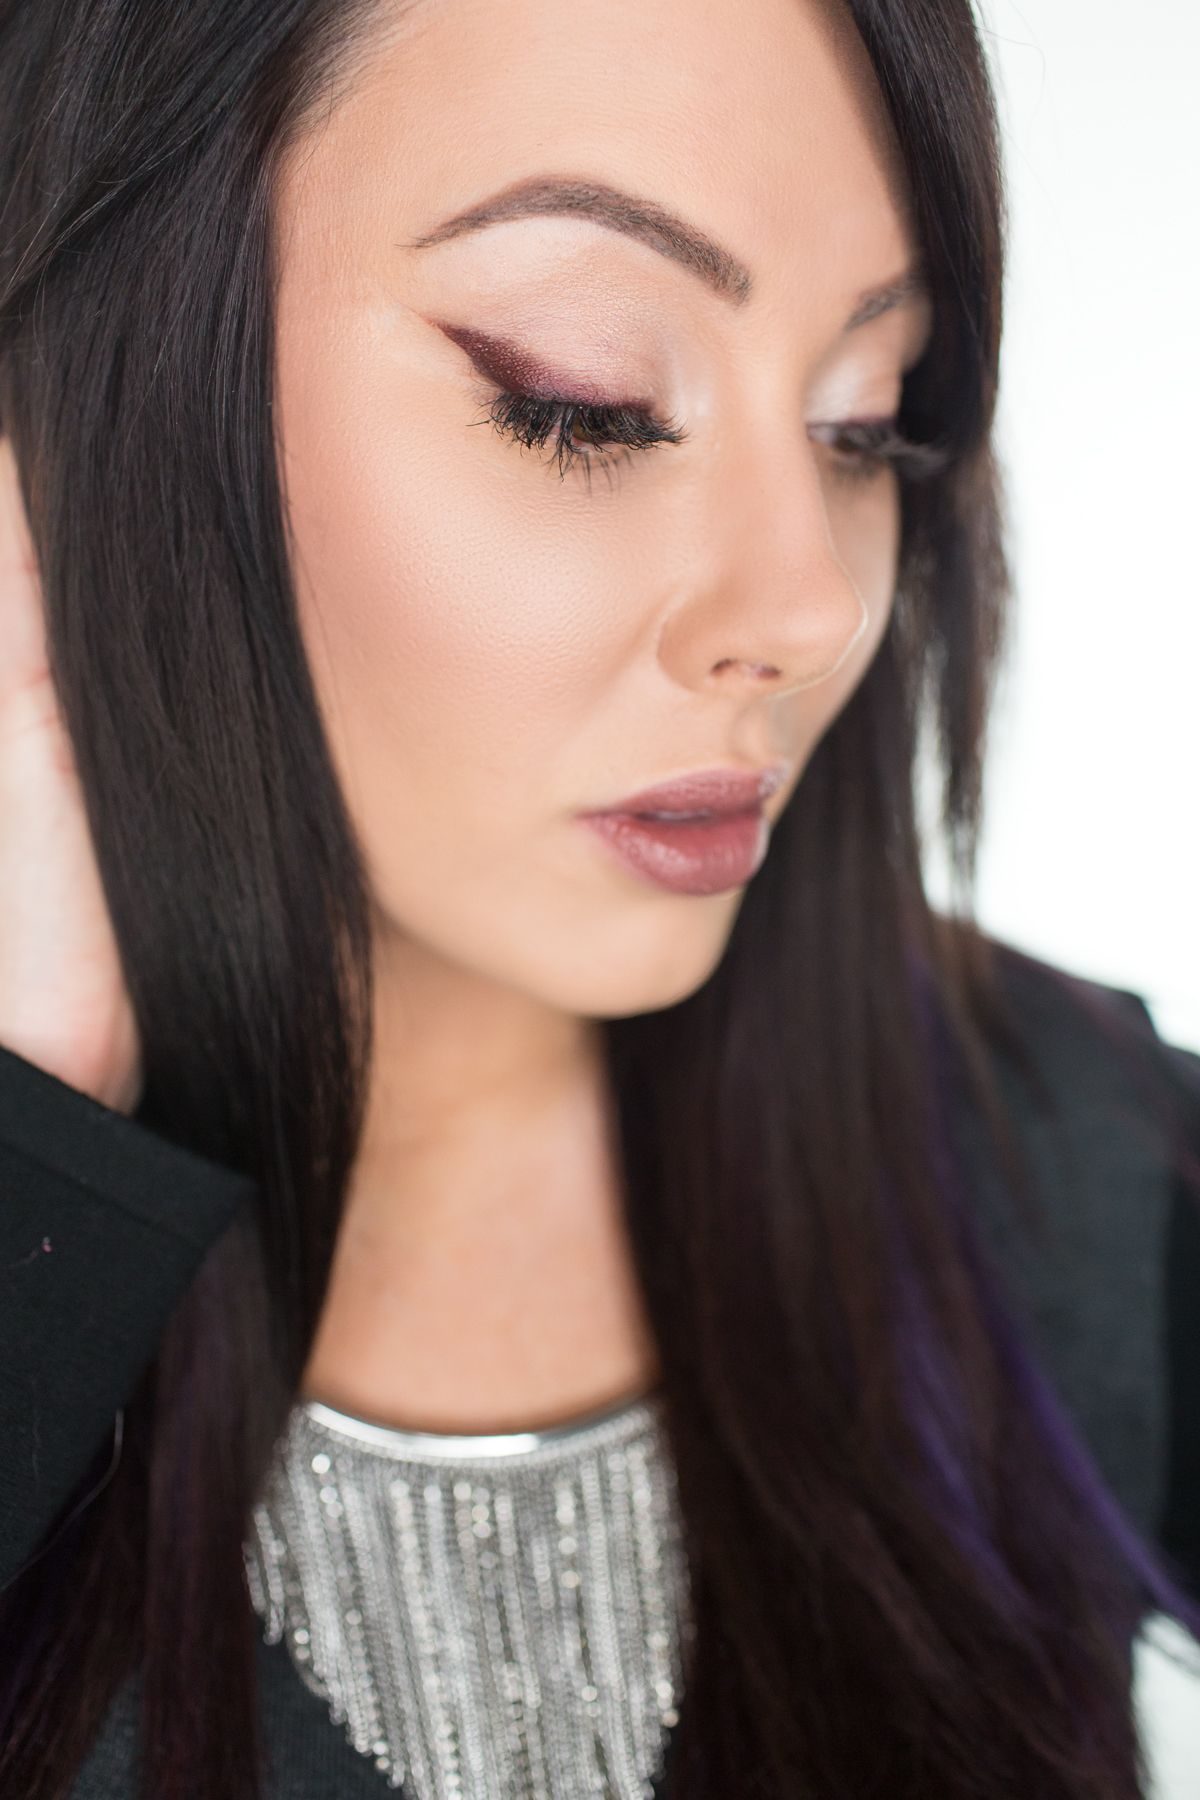 My NEW Everyday Makeup Look for 2015 @themakeupgeek ...